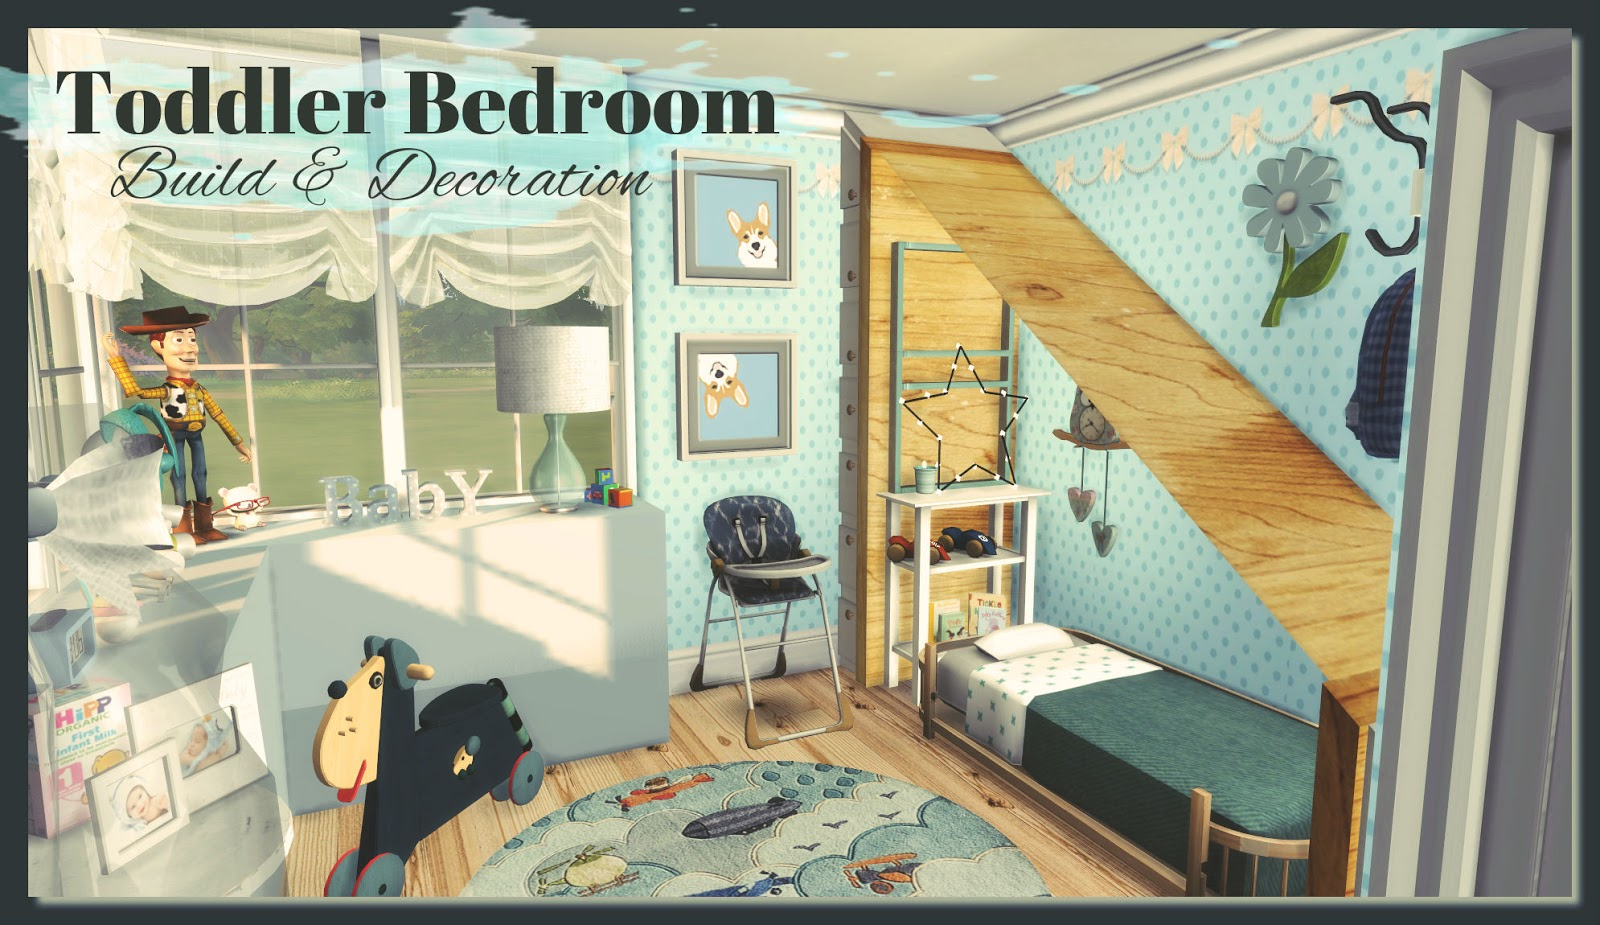 Amelia S Room Toddler Bedroom: Toddler Bedroom (Build & Decoration)